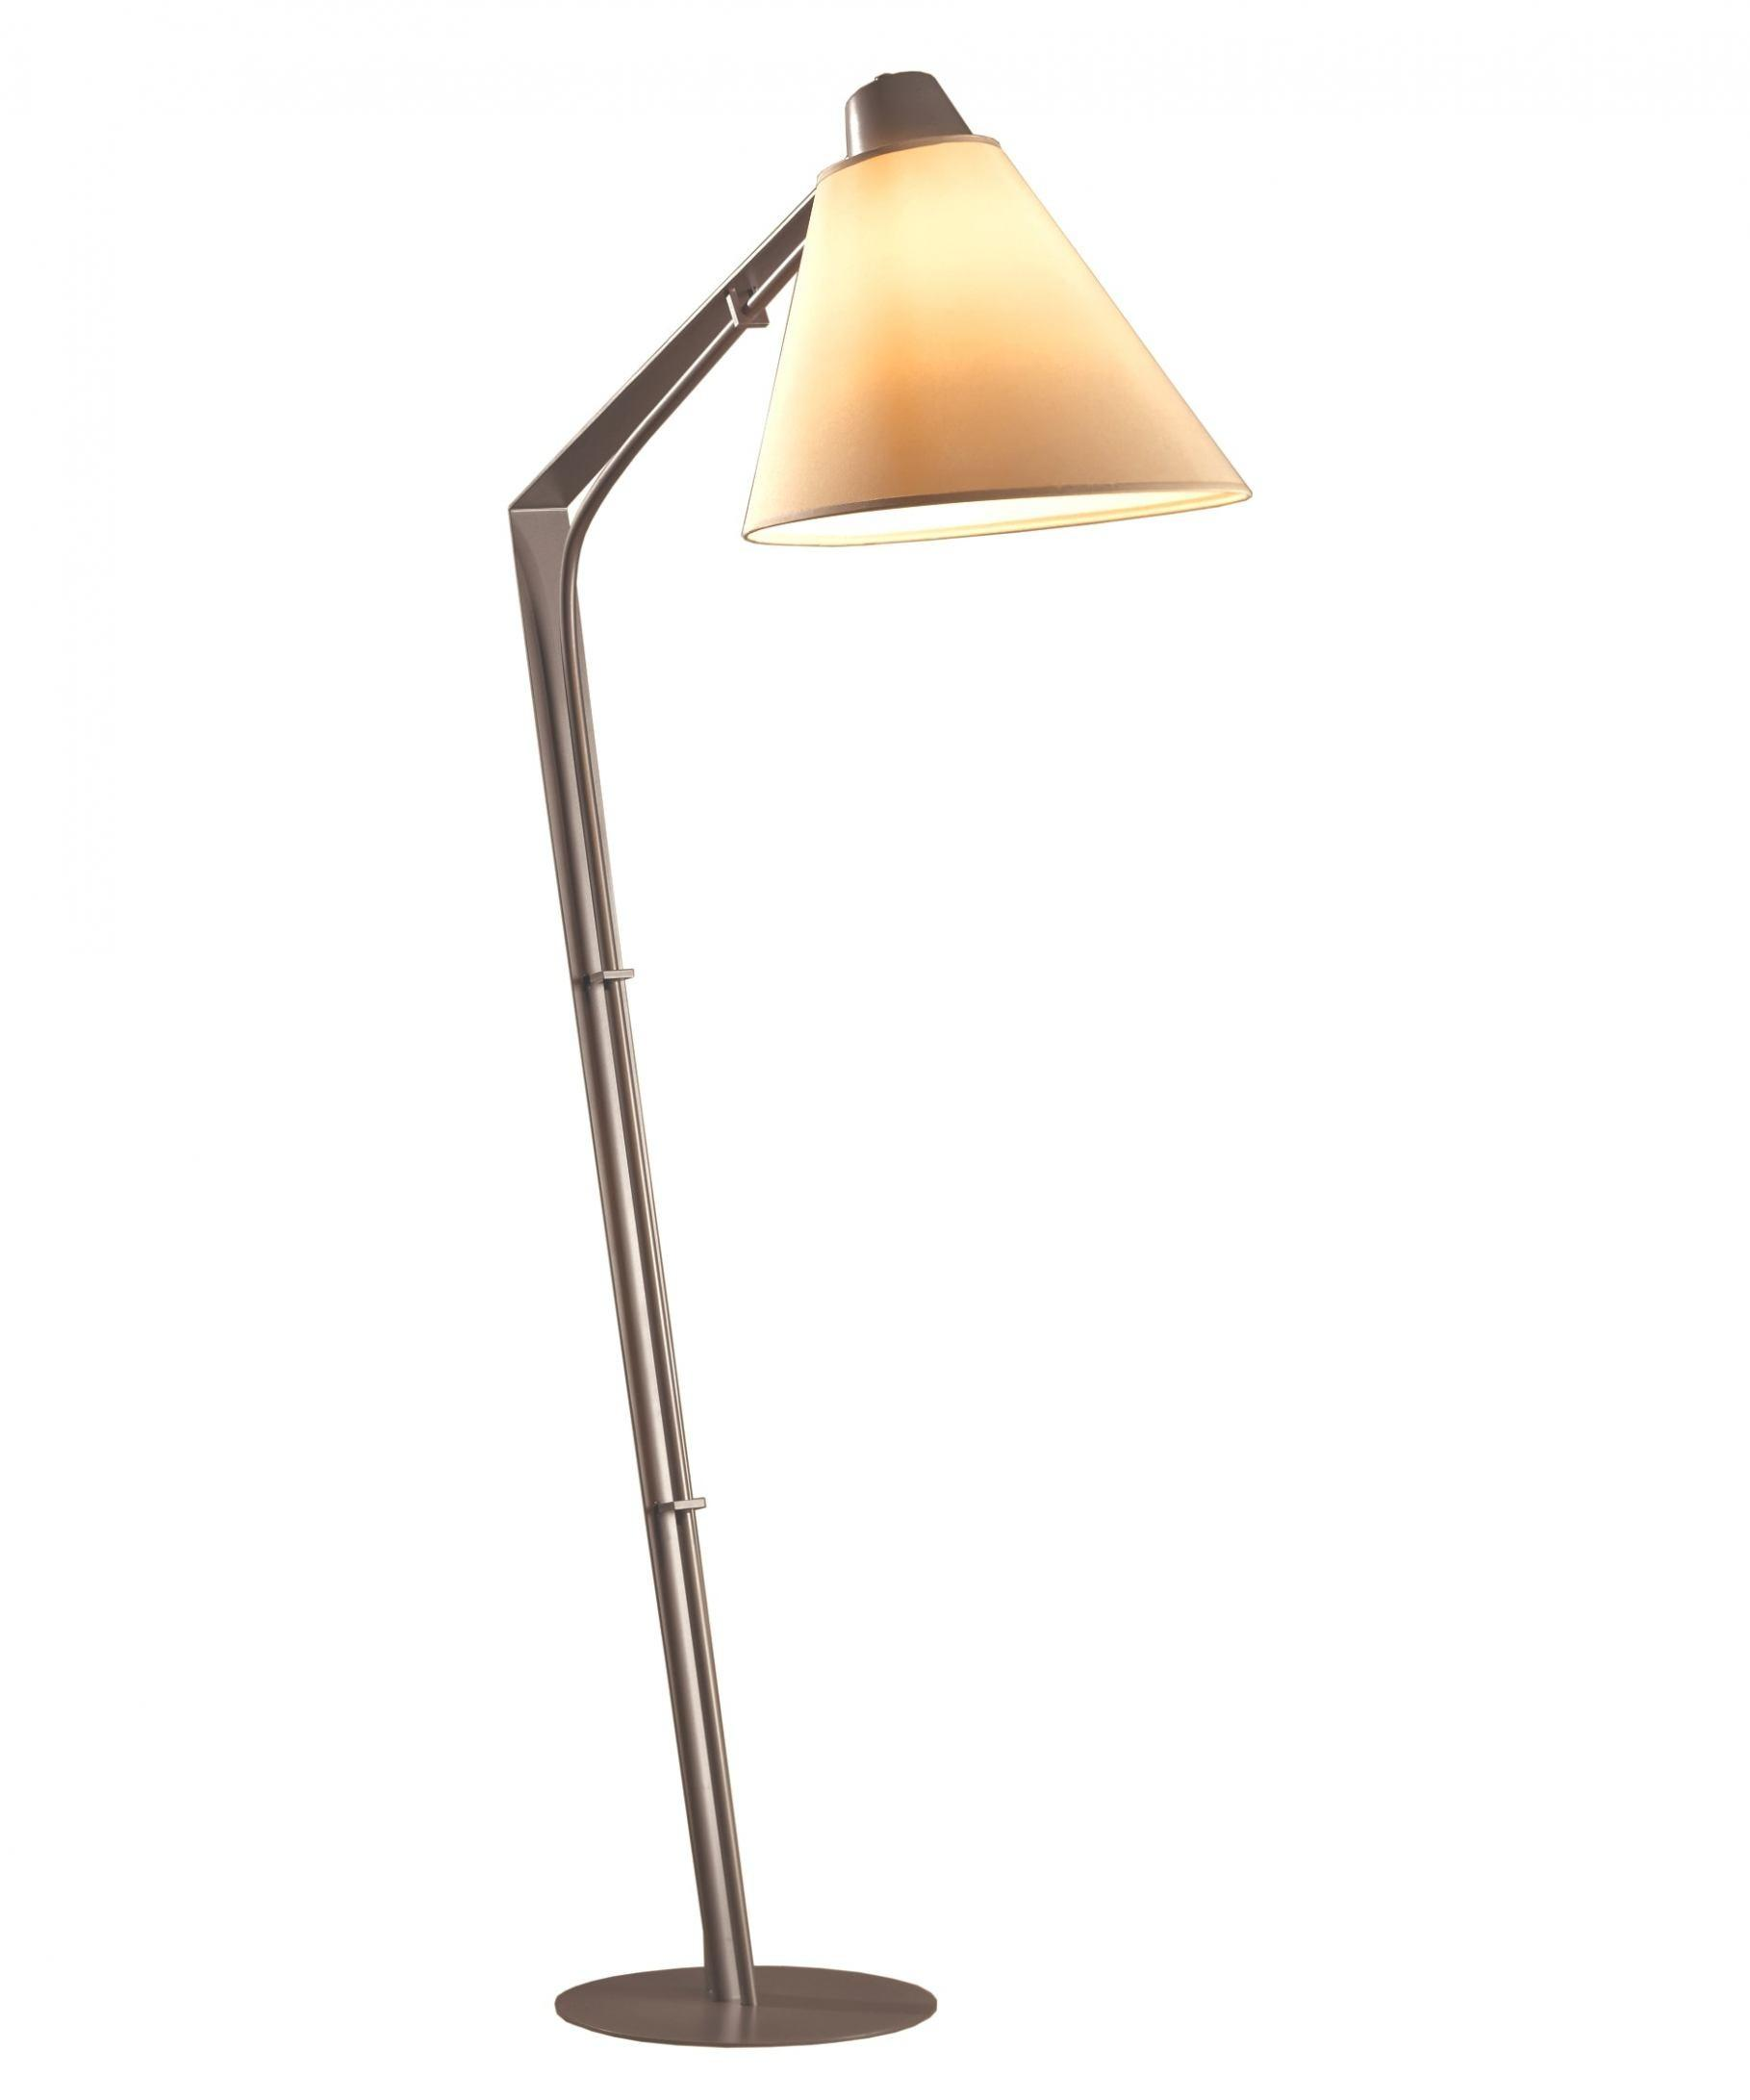 Best Floor Lamp Reading Ideas Bedside Design